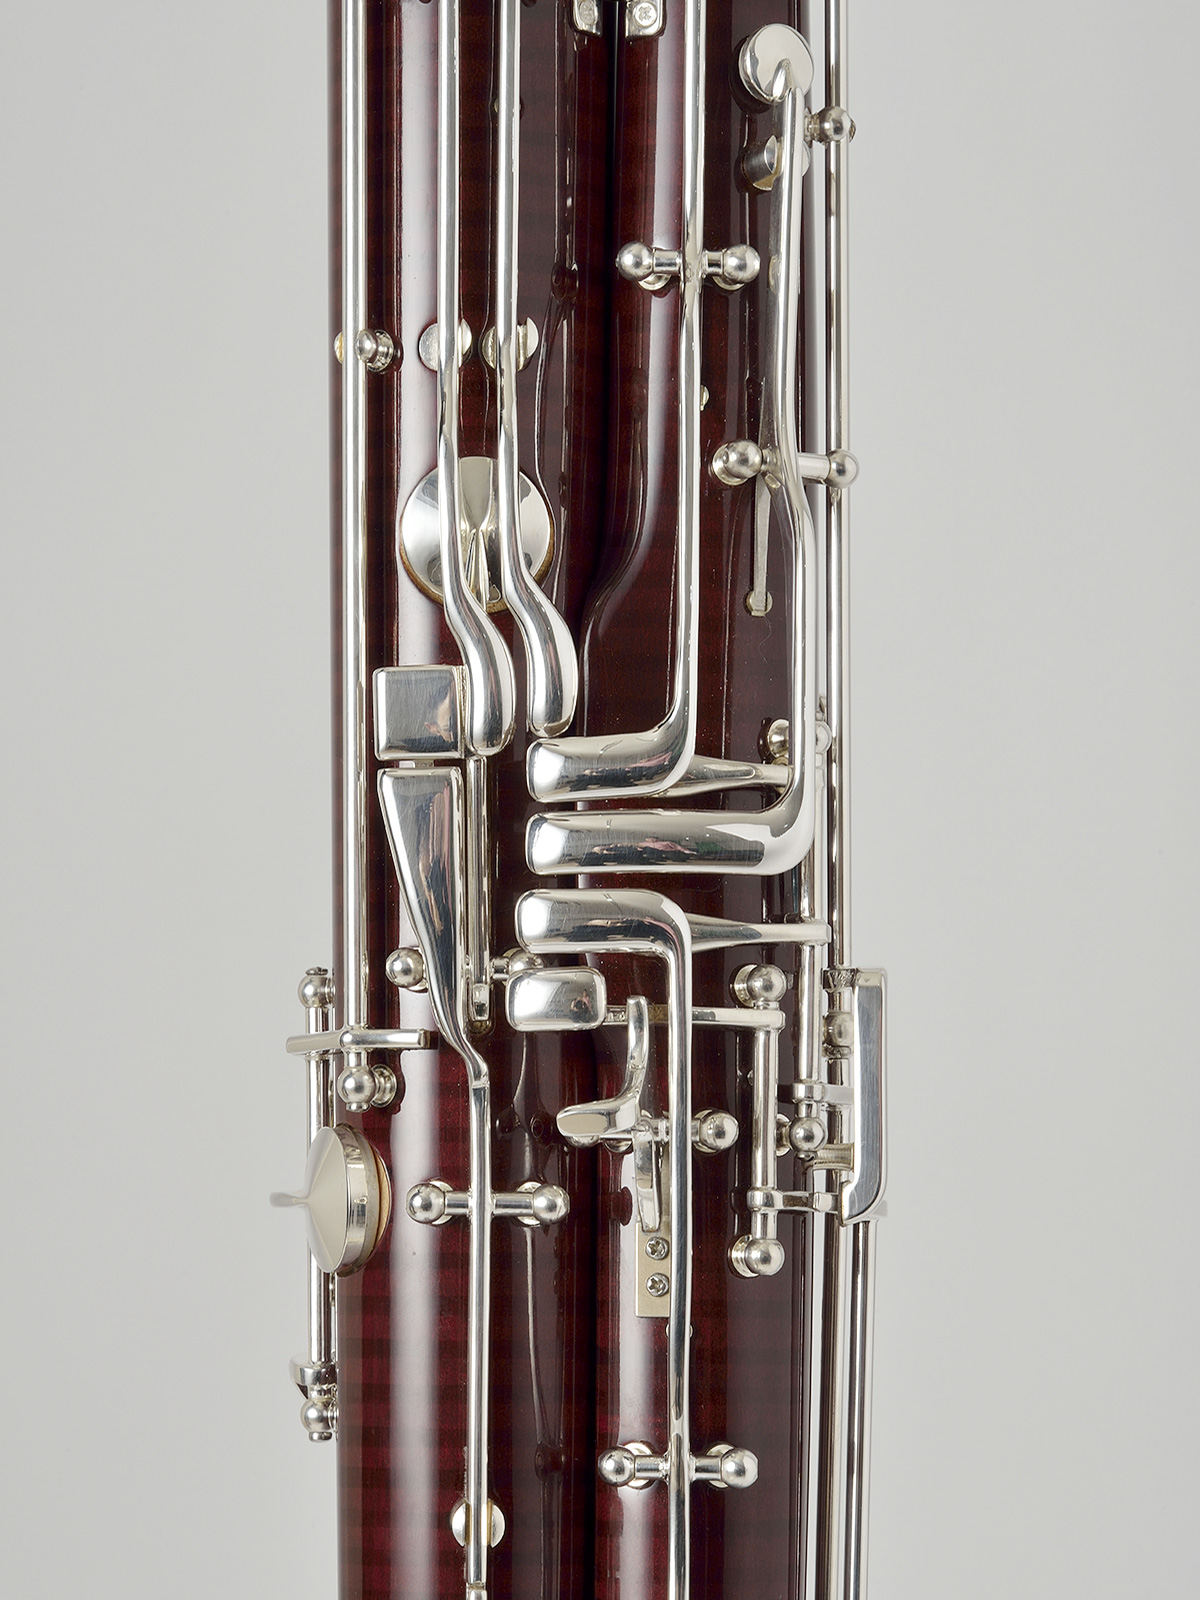 Model 0 – Takeda Bassoon